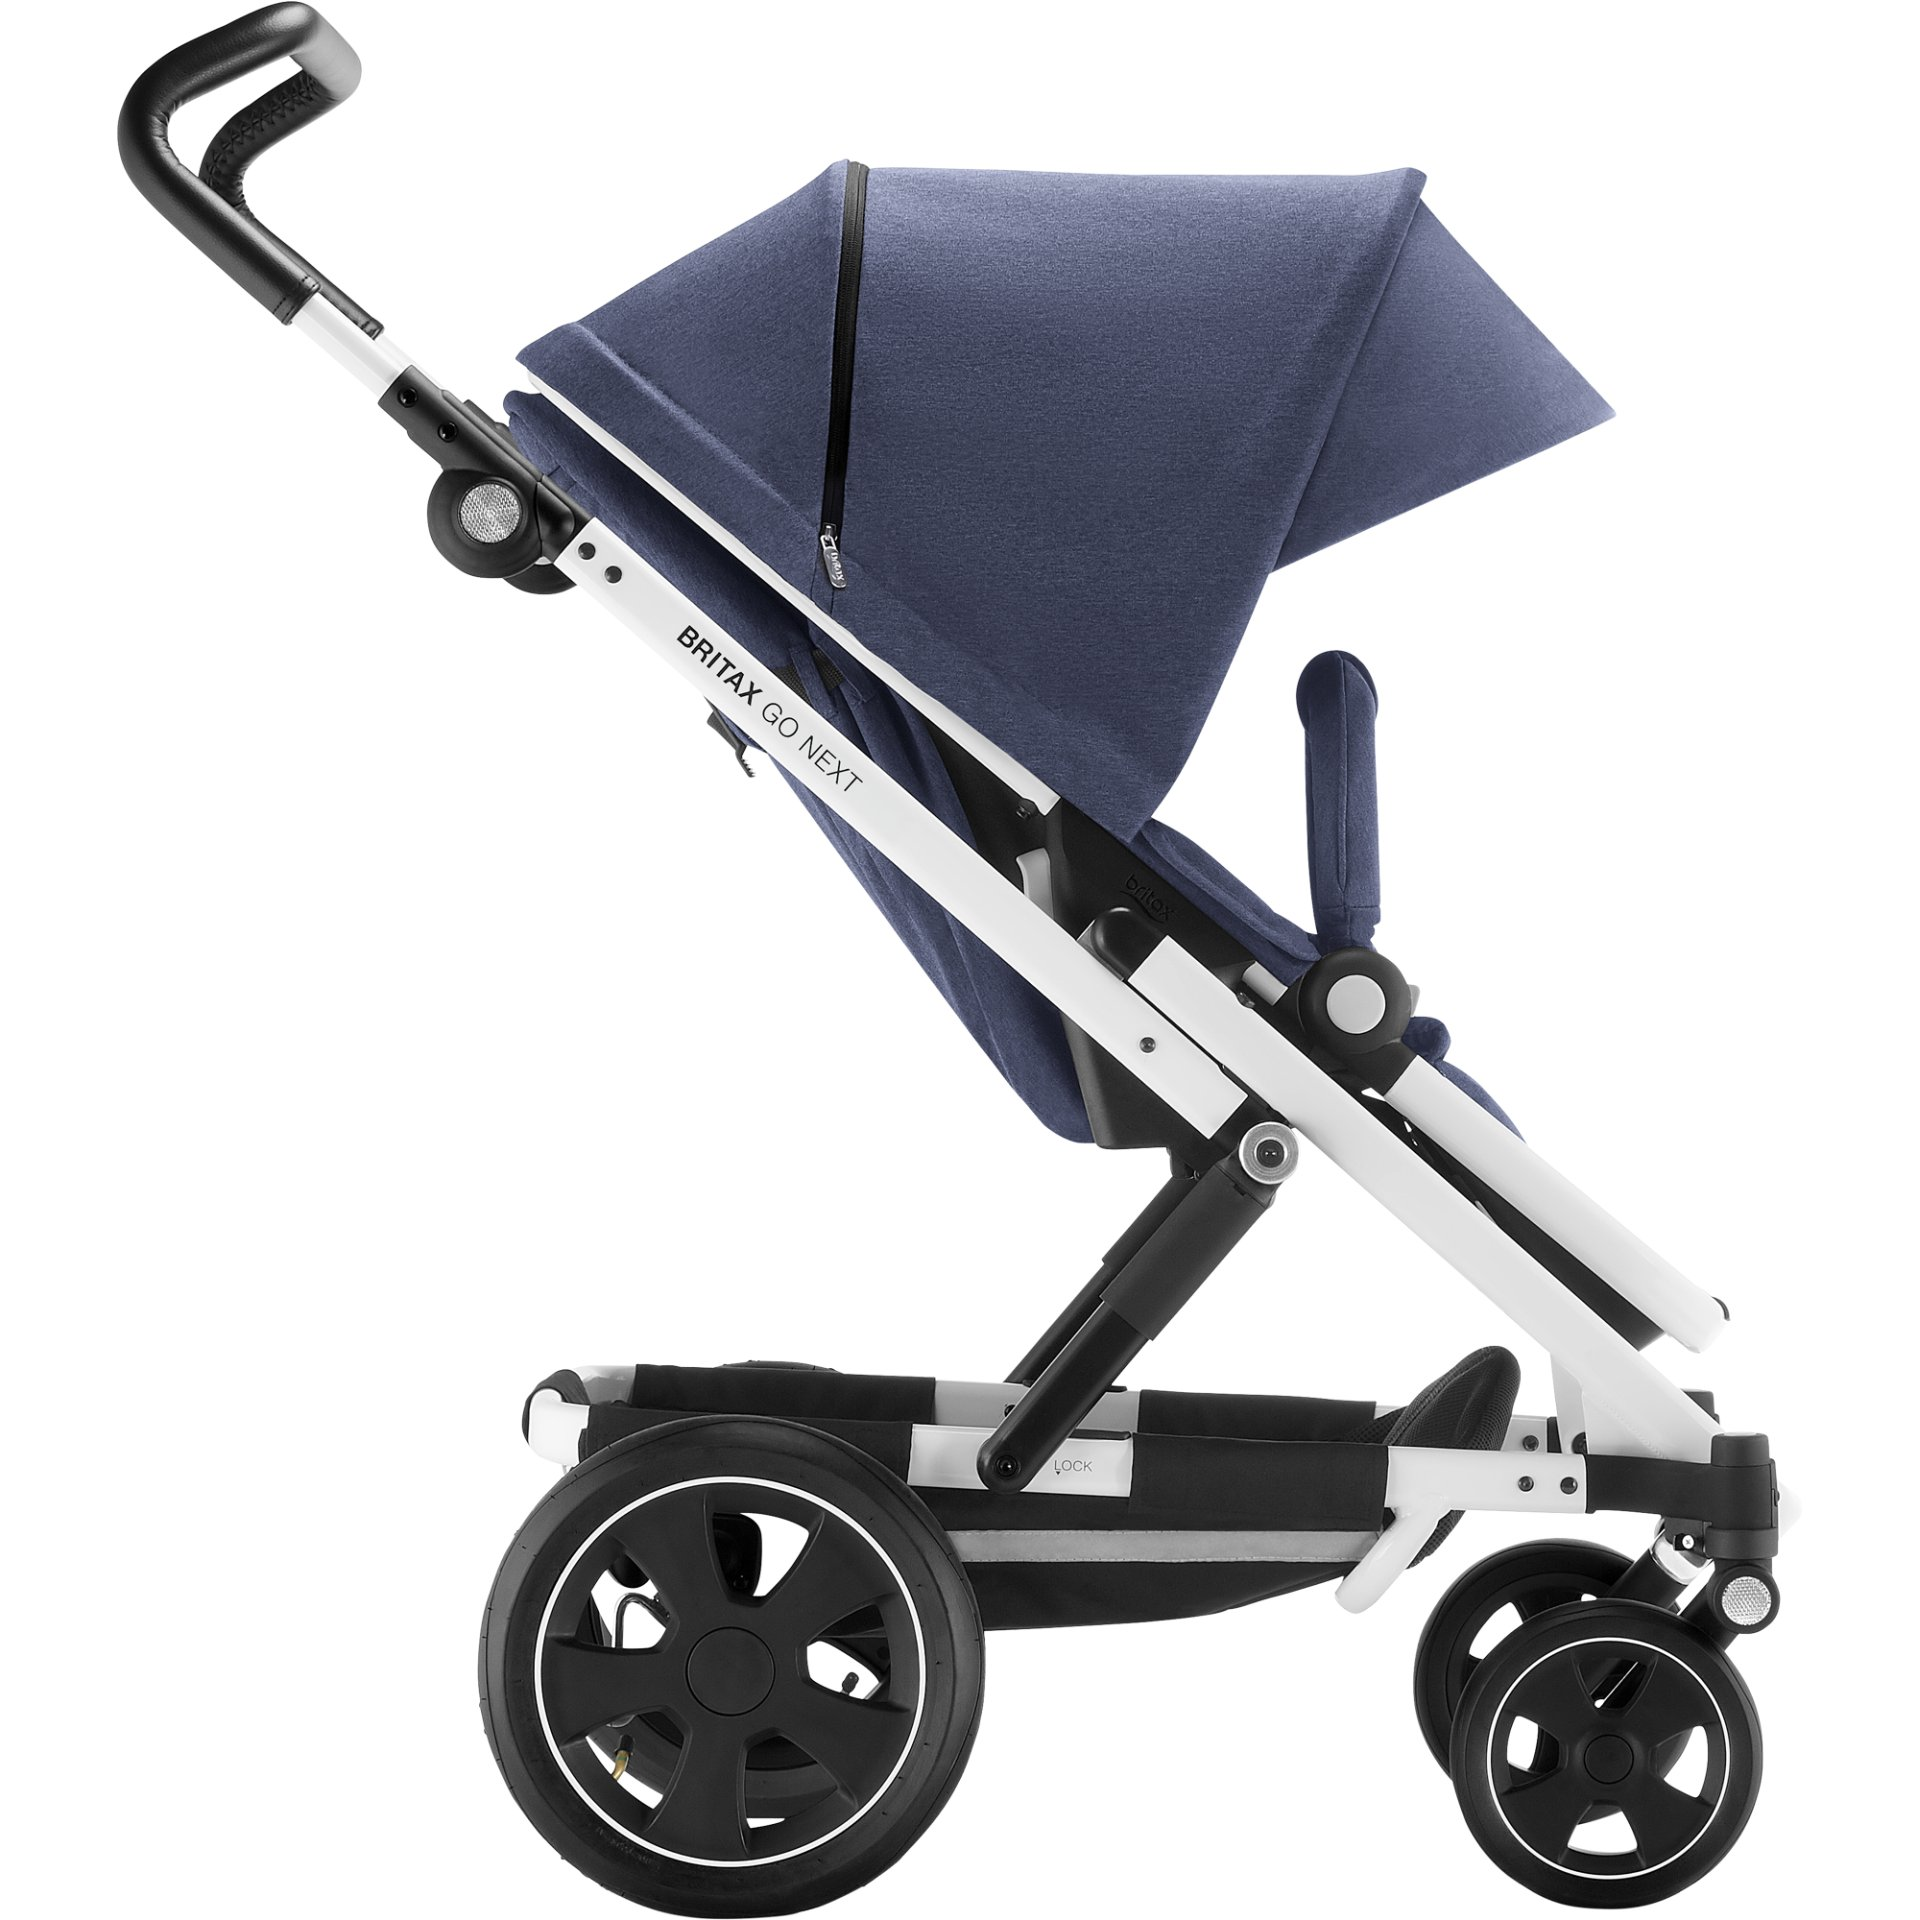 britax r mer kinderwagen go next 2 2019 navy melange online kaufen bei kidsroom kinderwagen. Black Bedroom Furniture Sets. Home Design Ideas